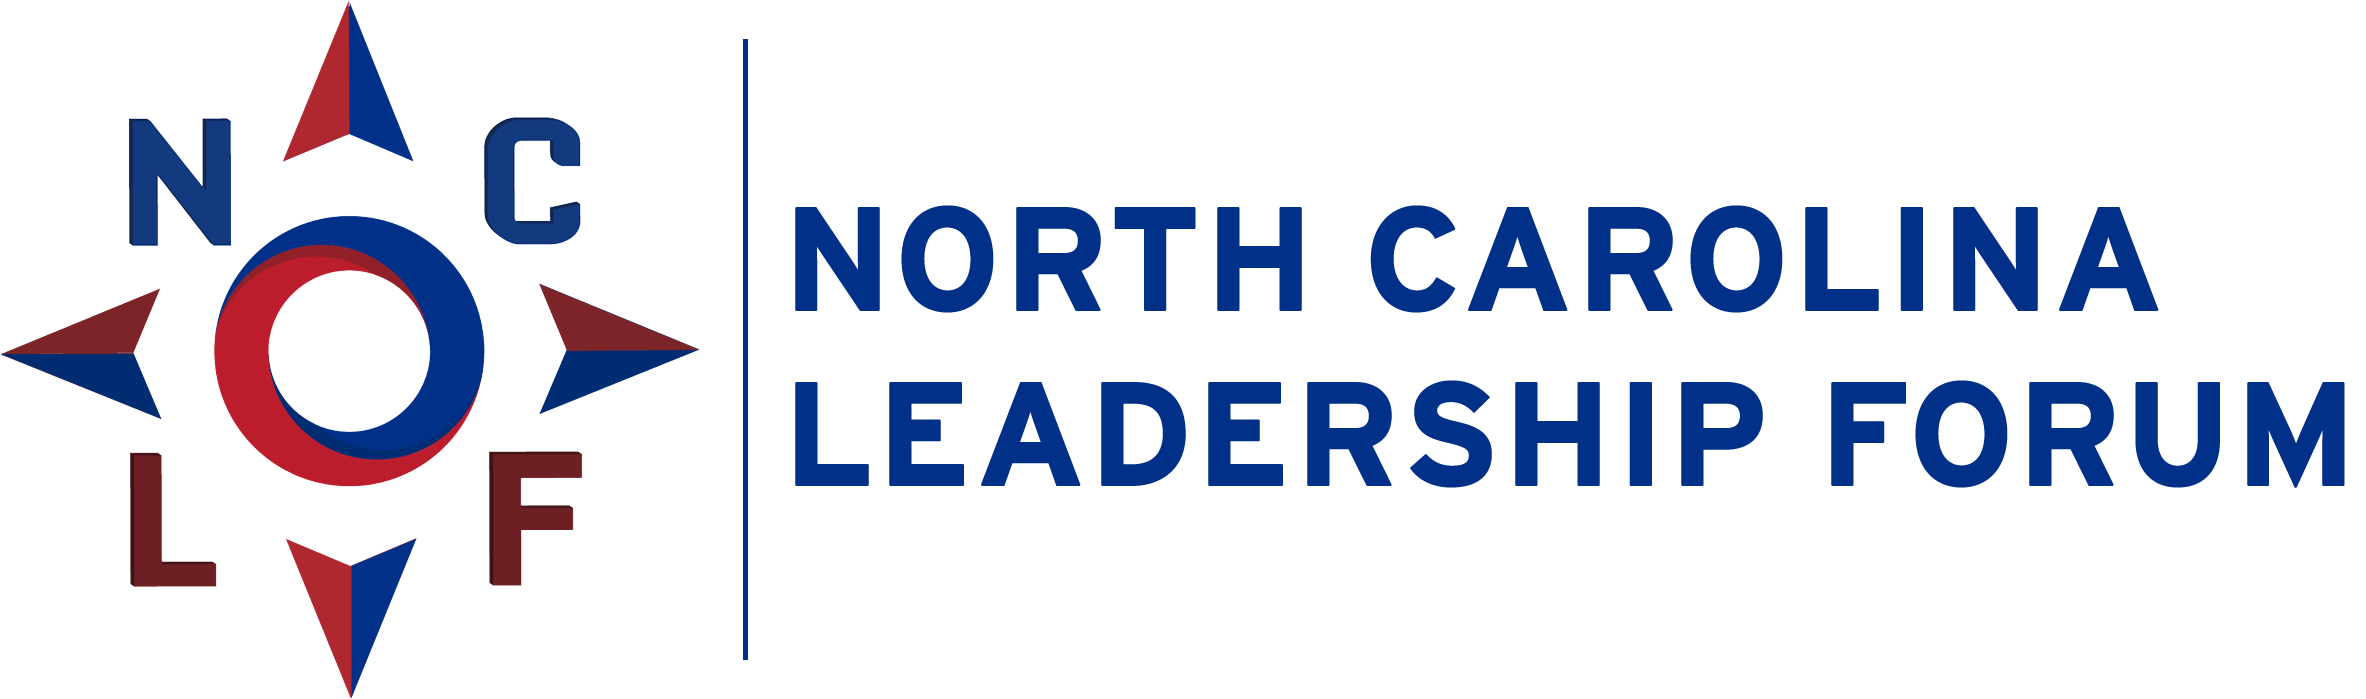 North Carolina Leadership Forum